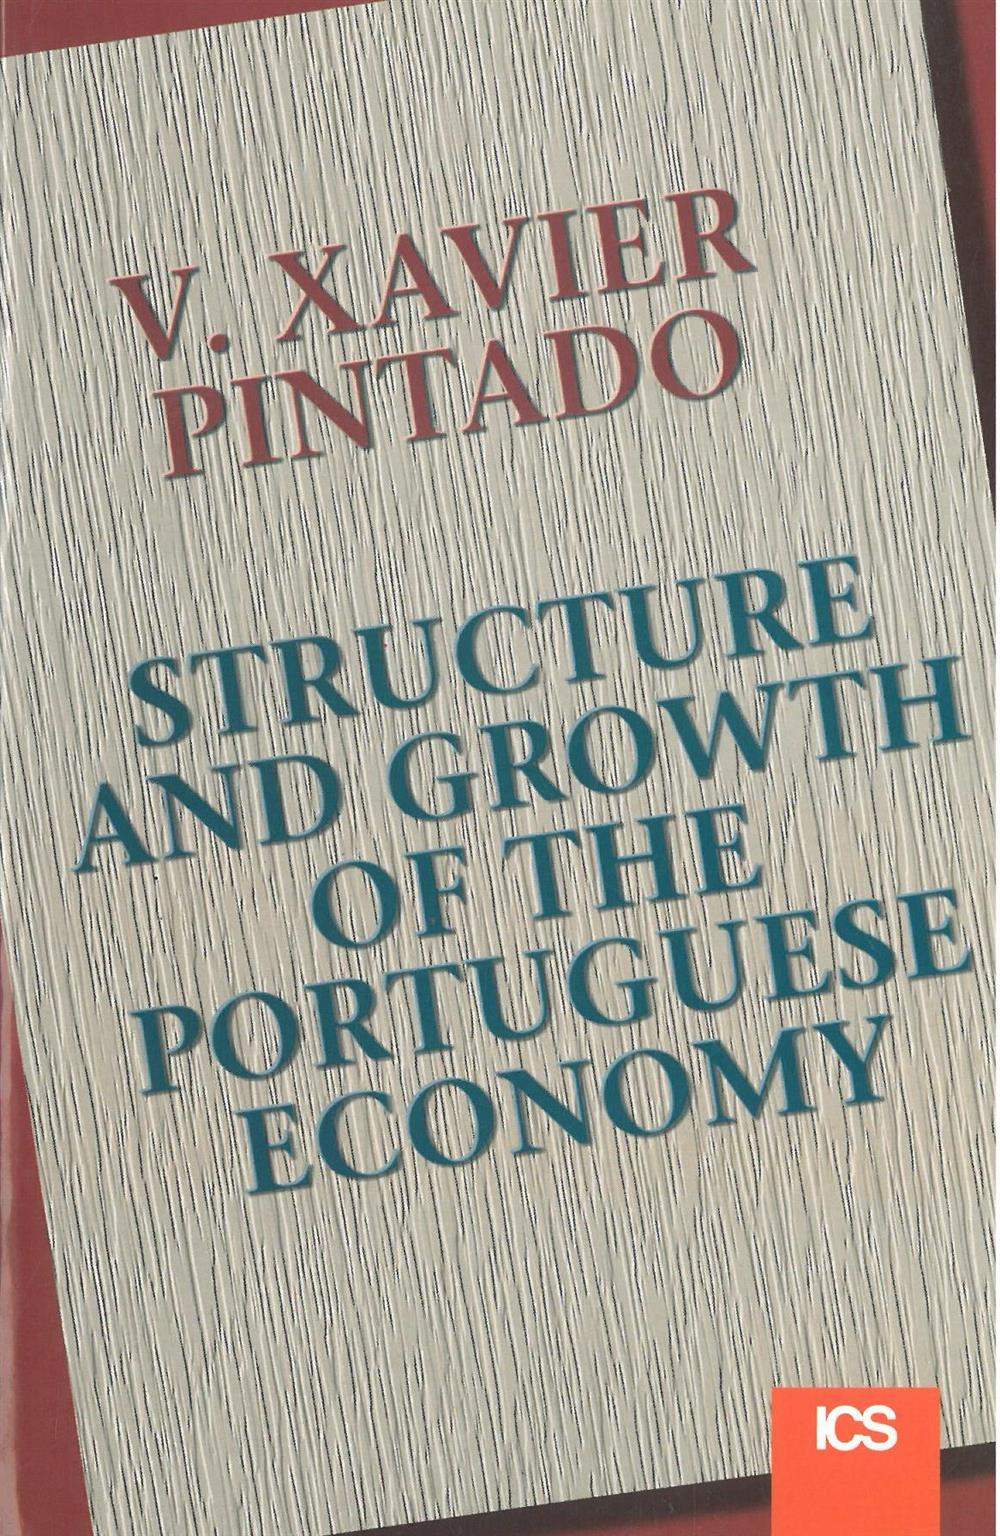 Structure and growth of the portuguese economy.jpg